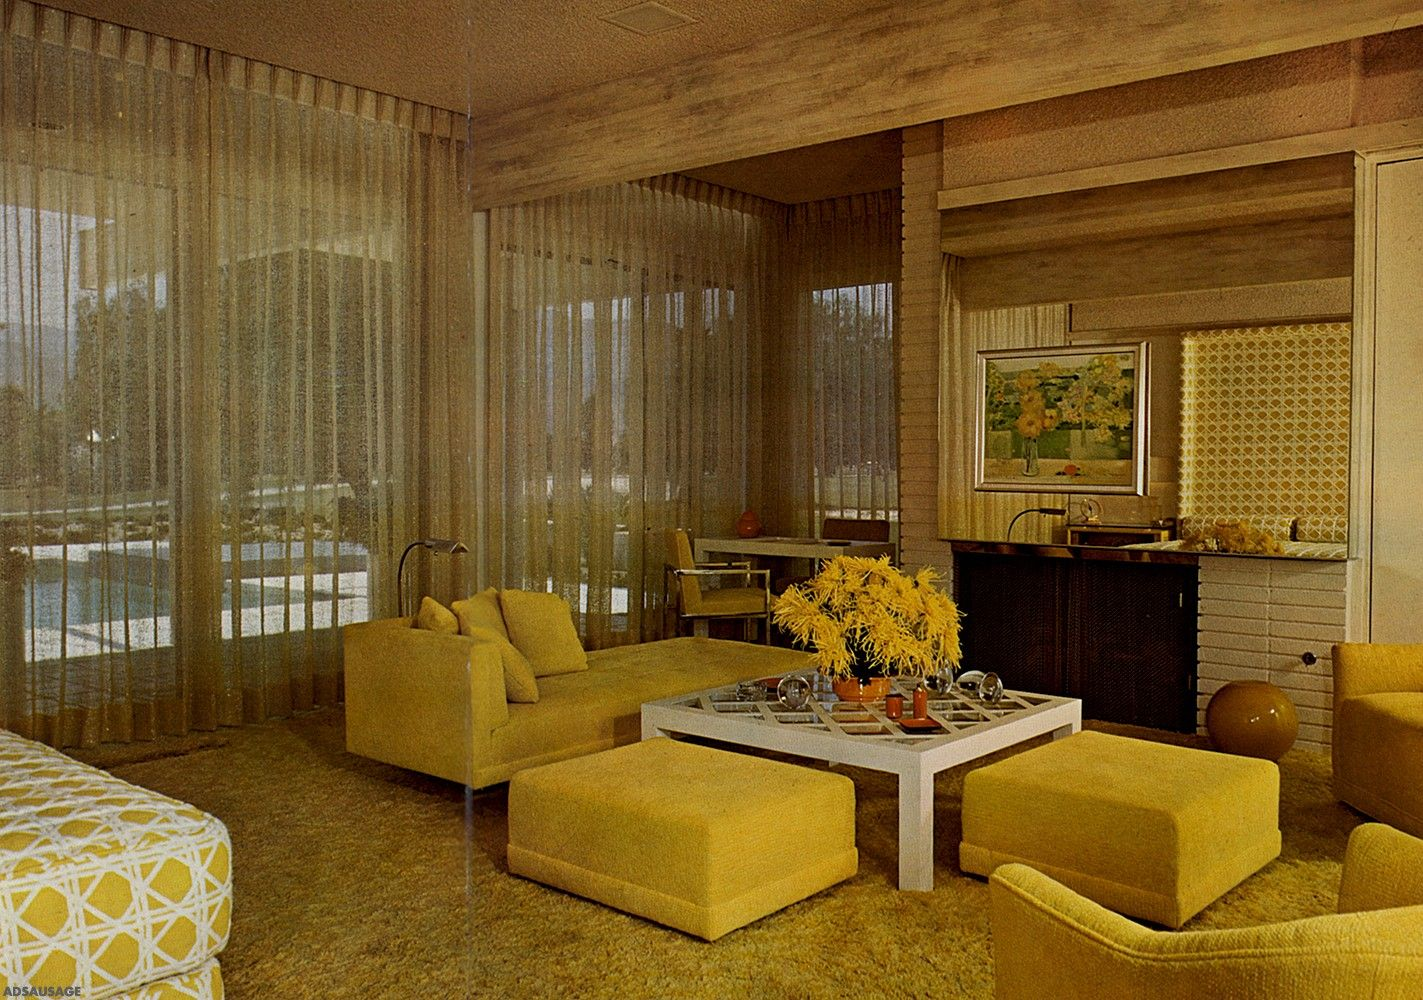 Design 1960 1970 1960s decor modern interior design interior styling interior